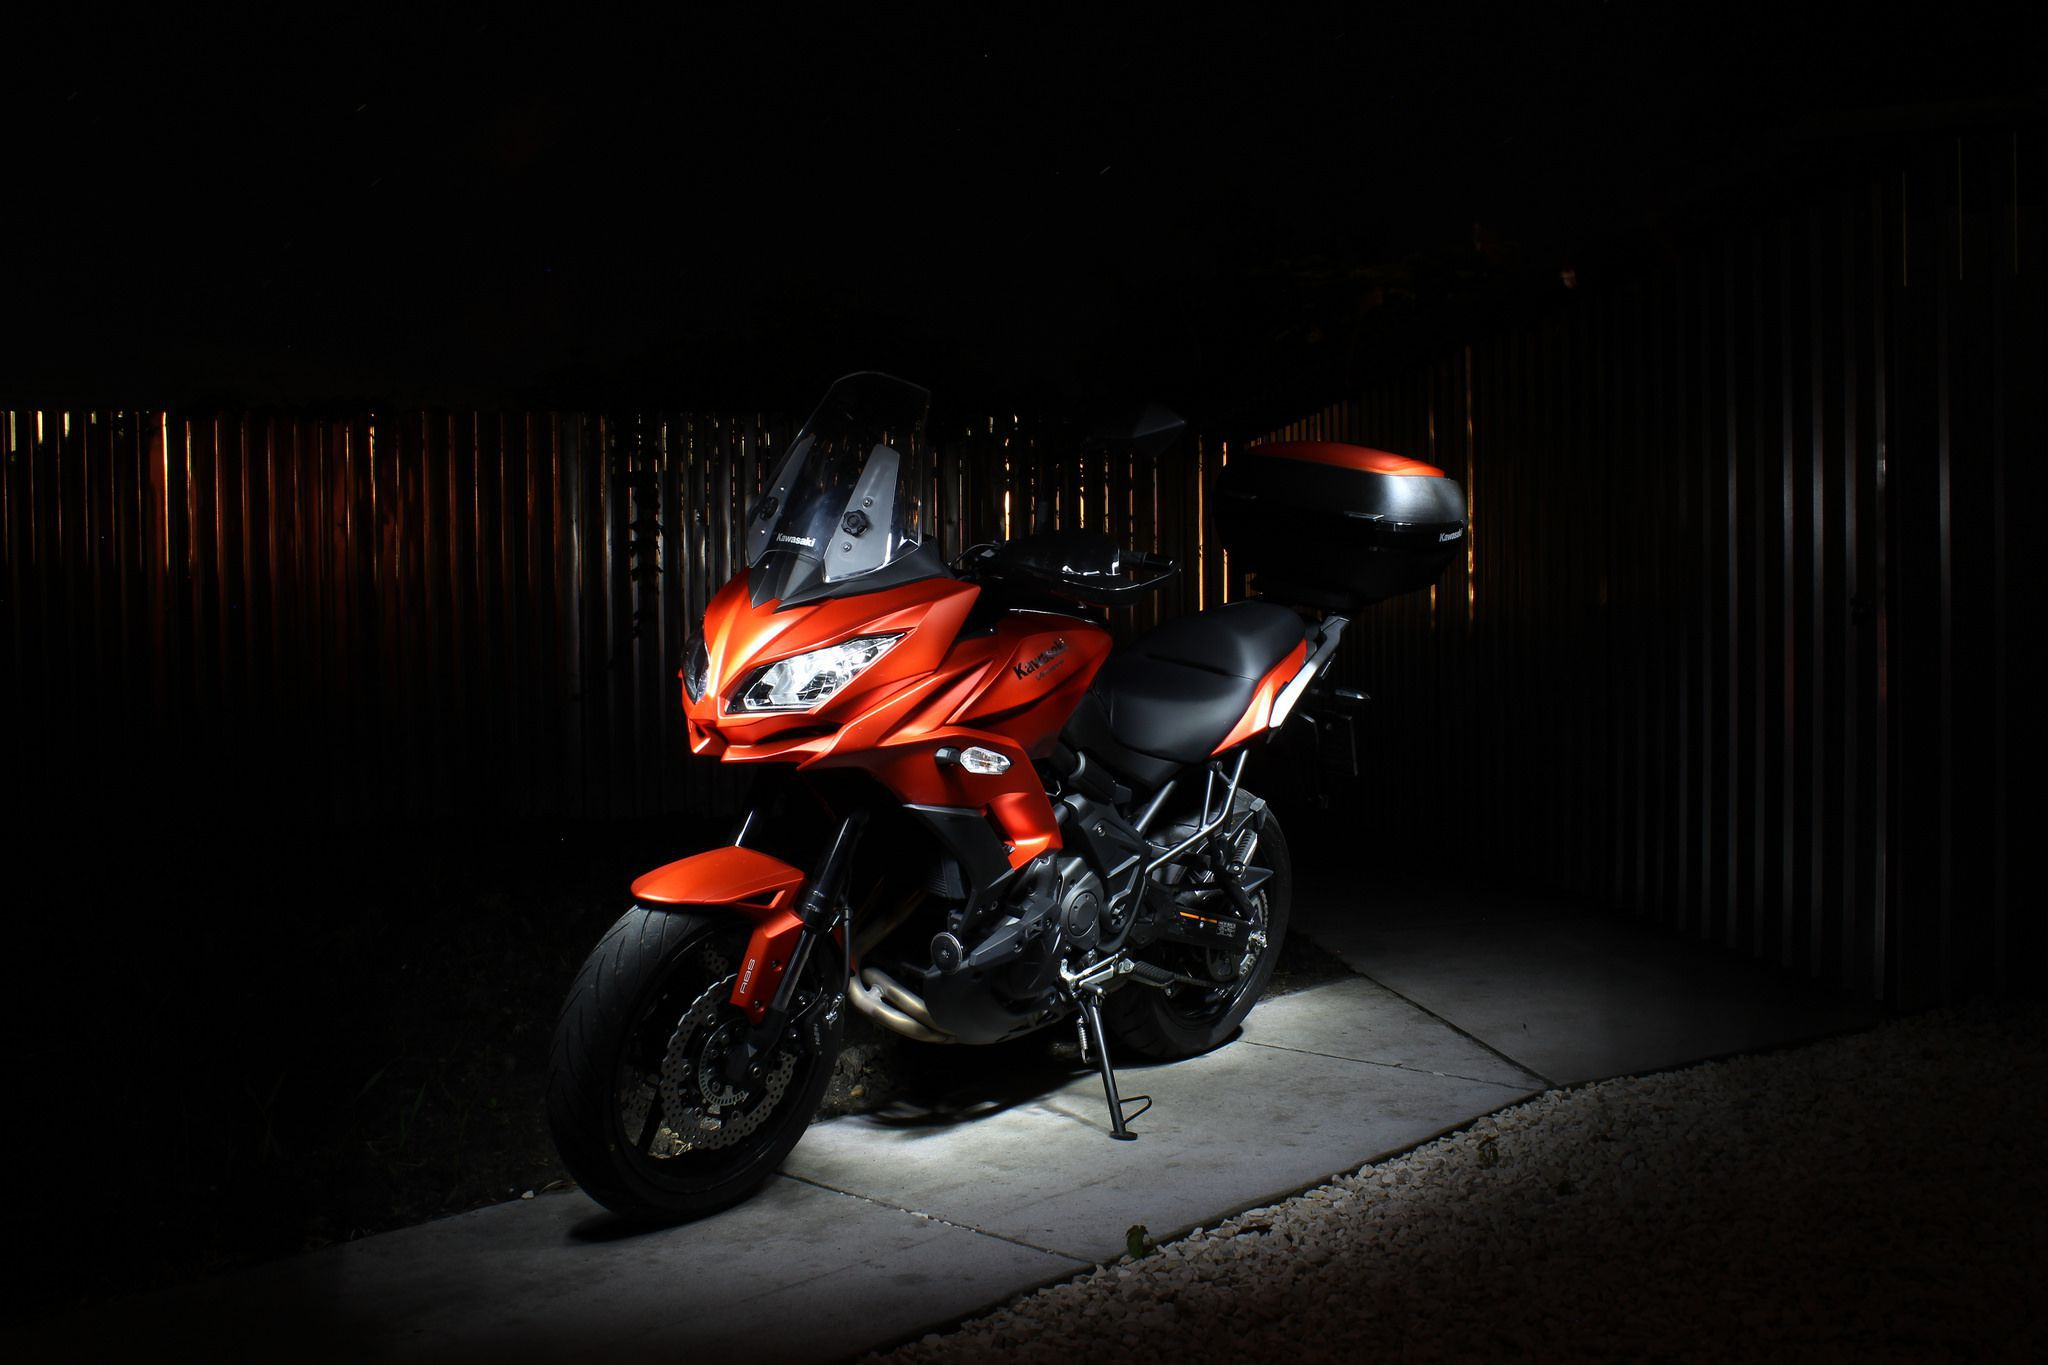 Kawasaki Versys 650 (SE, GT) in Black, red, white and yellow